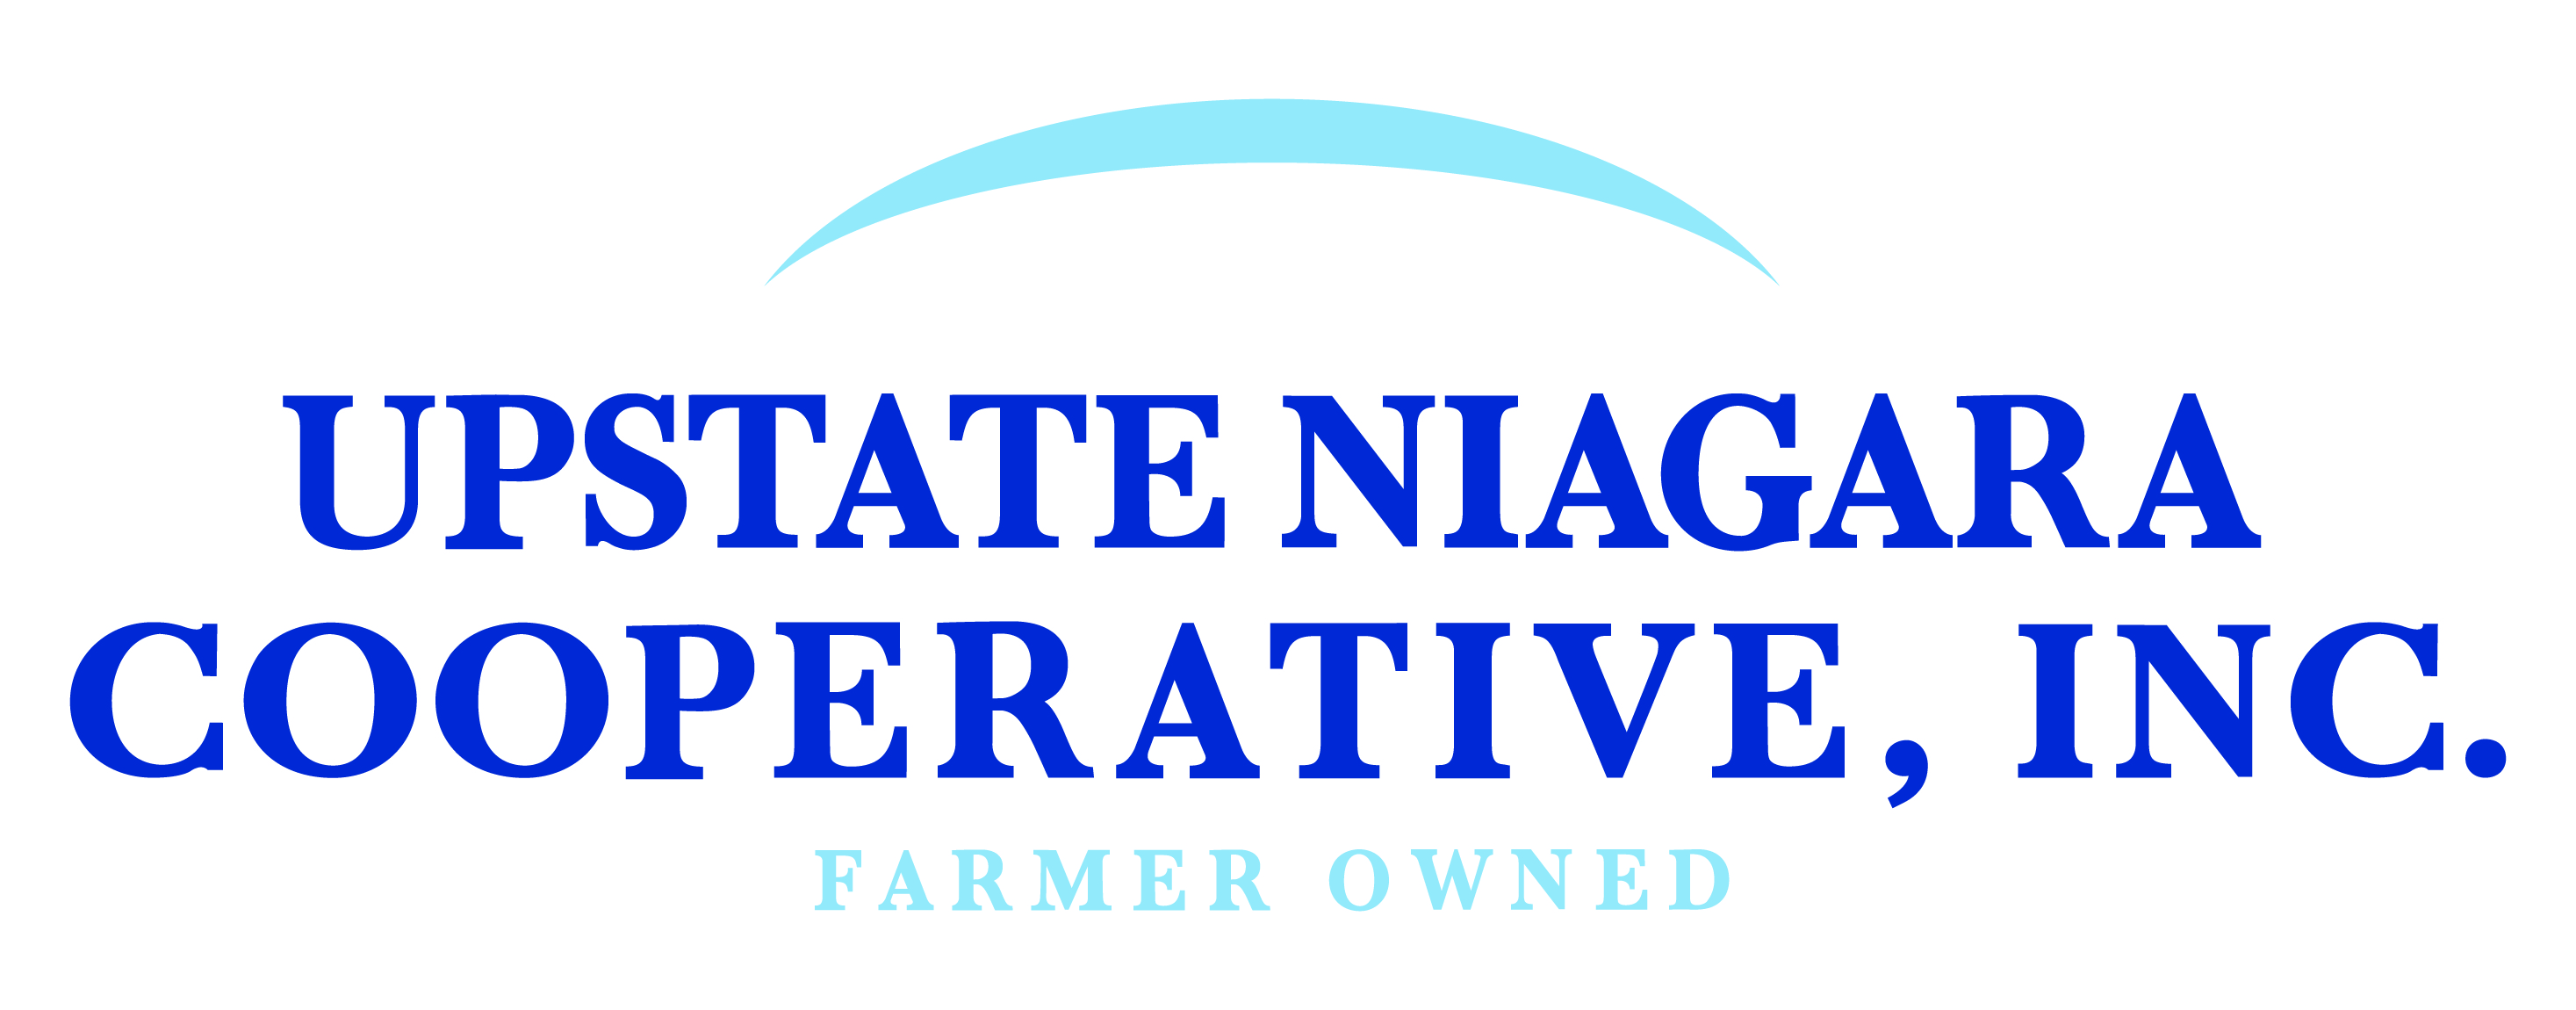 Upstate Niagara Cooperative Inc